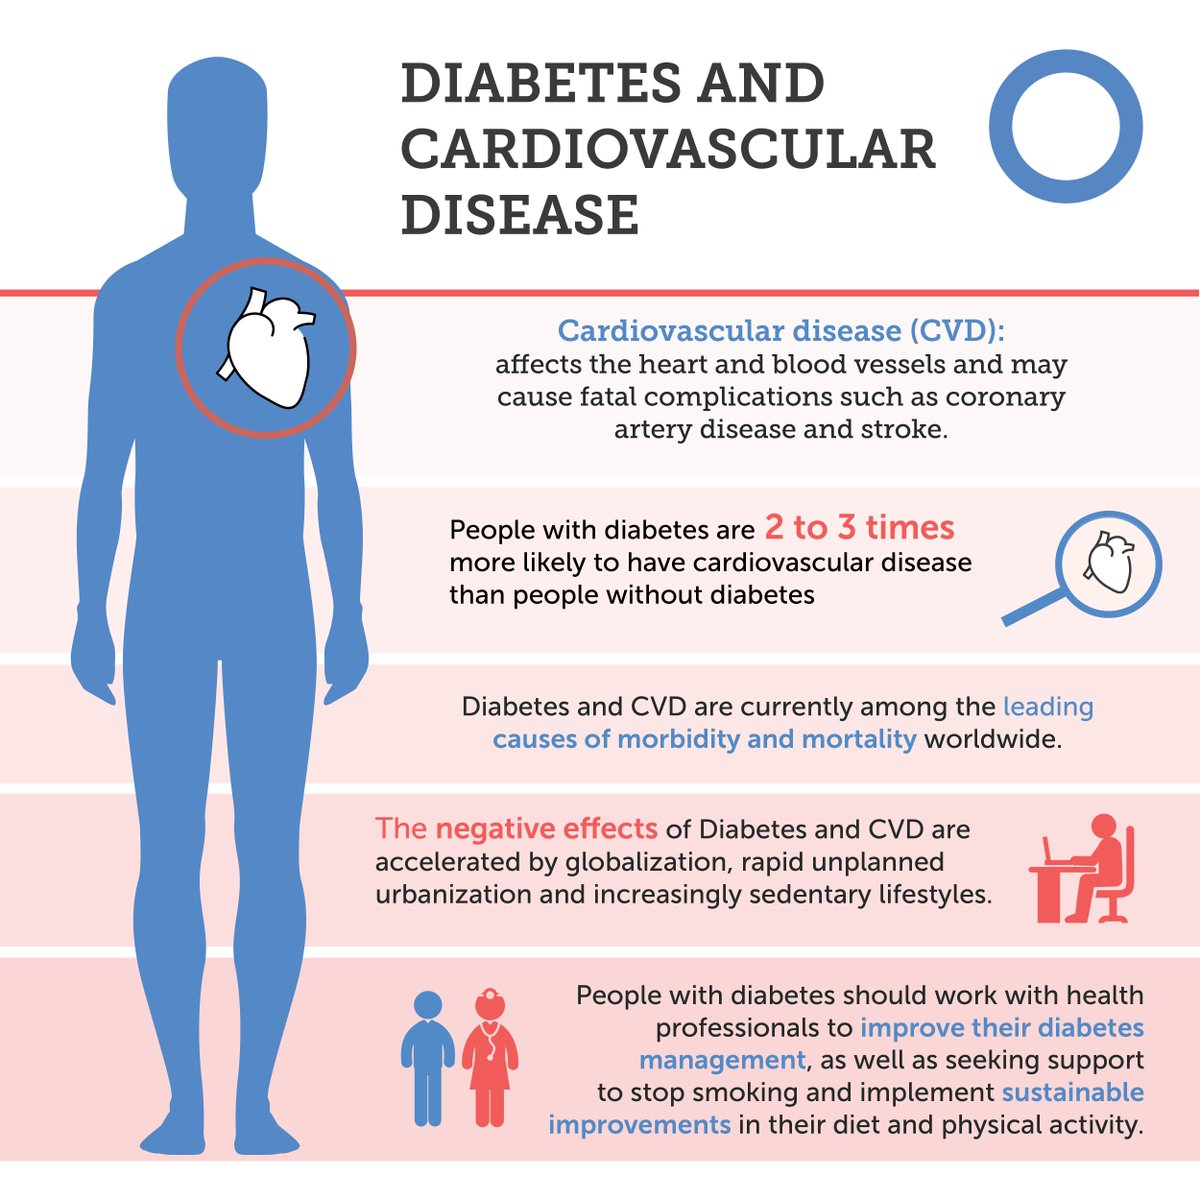 test Twitter Media - Cardiovascular disease (#CVD) is a major cause of death and disability in people with #diabetes Learn more about the risks and the importance of good diabetes management to prevent or delay this serious complication. https://t.co/oOEx7mWoRD